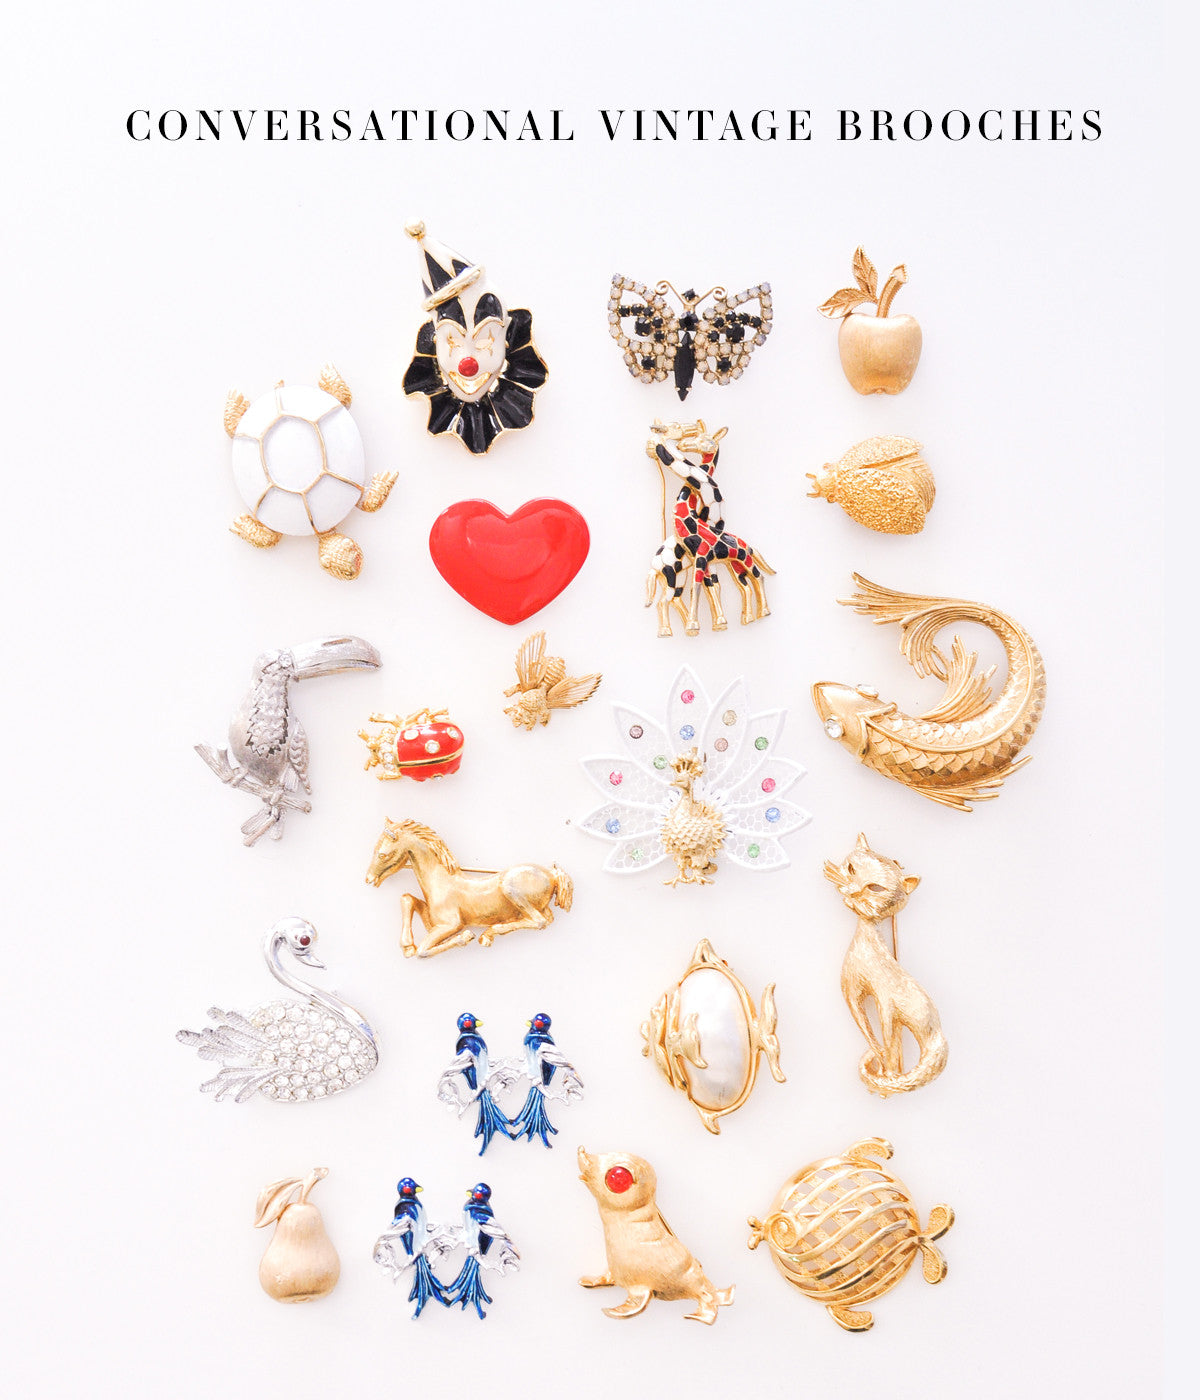 Conversational Vintage Brooches